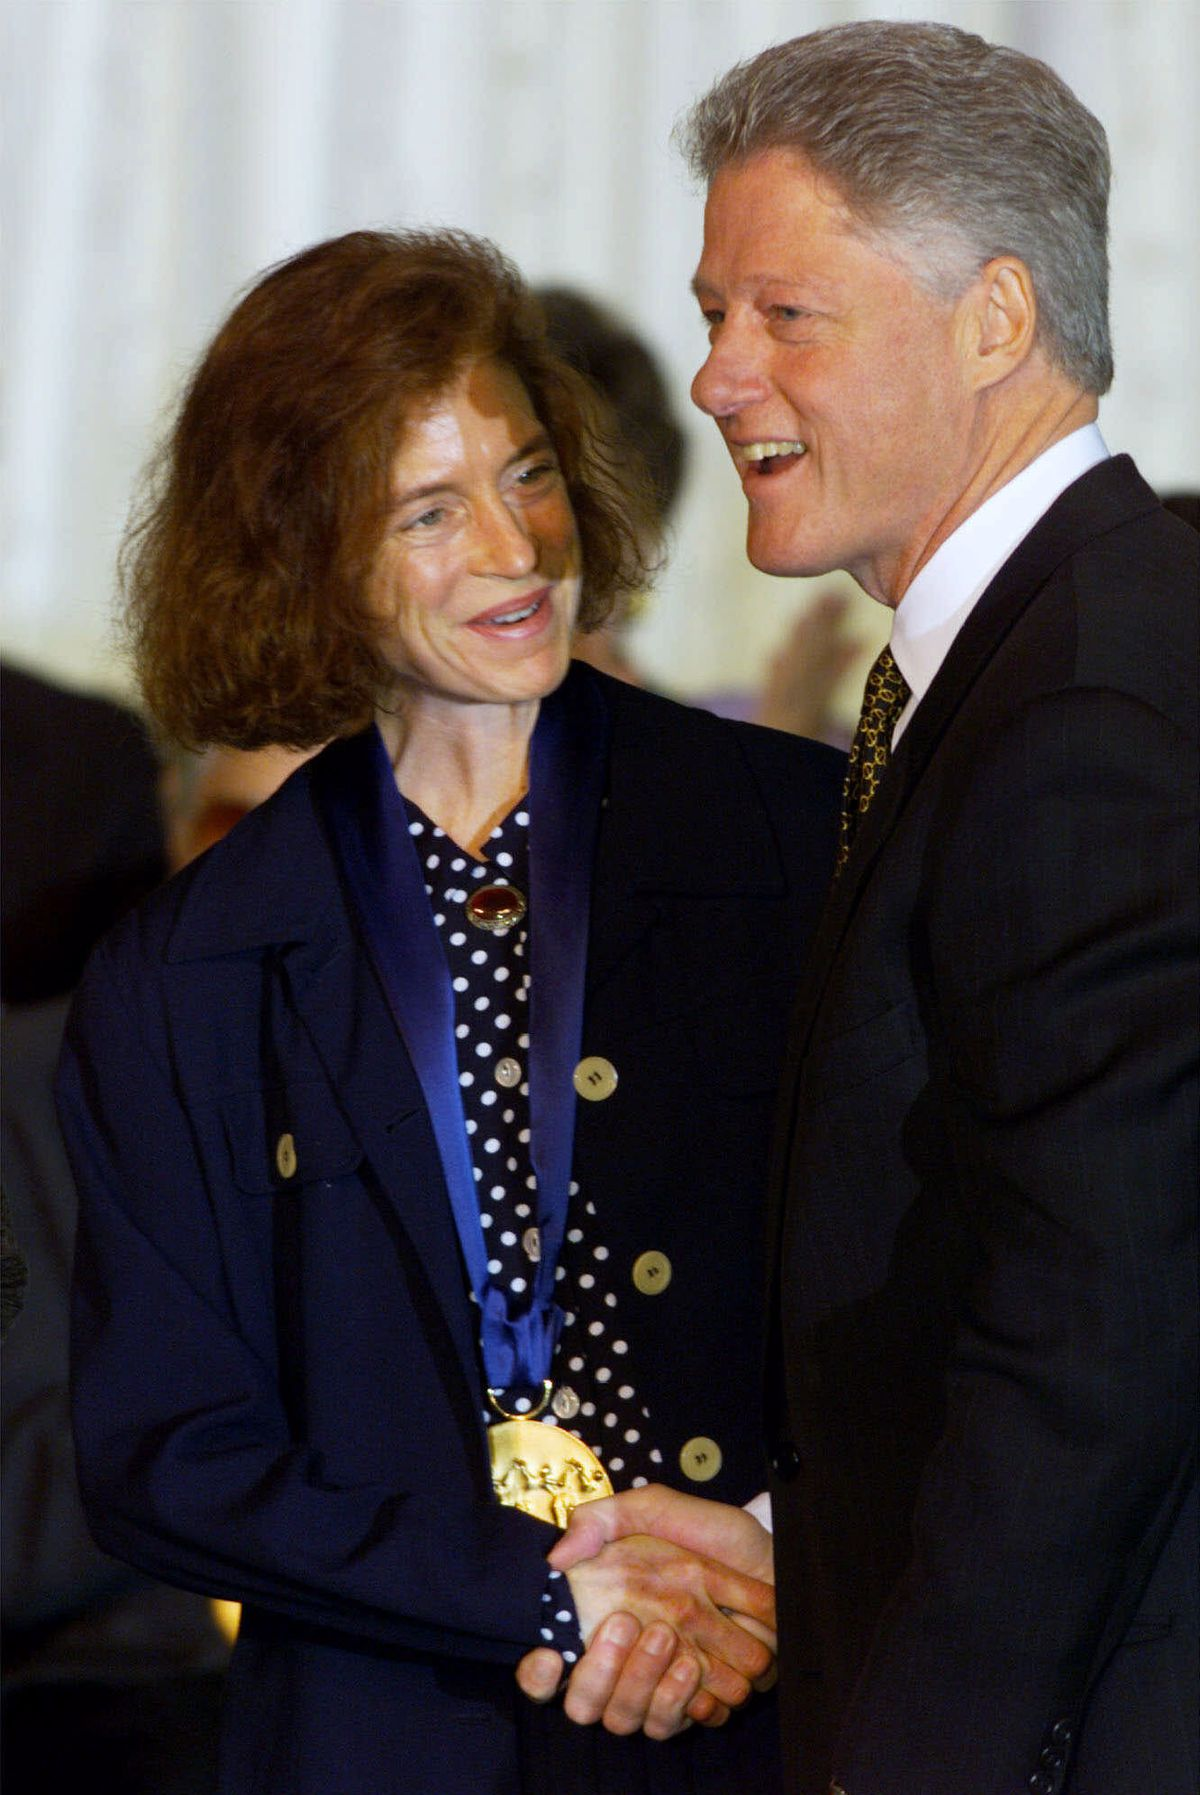 Martha Lavey, artistic director of Steppenwolf Theatre, wears the 1998 National Medal of Arts Award presented to the theater by President Clinton during a ceremony at the White House. | AP Photo/Doug Mills